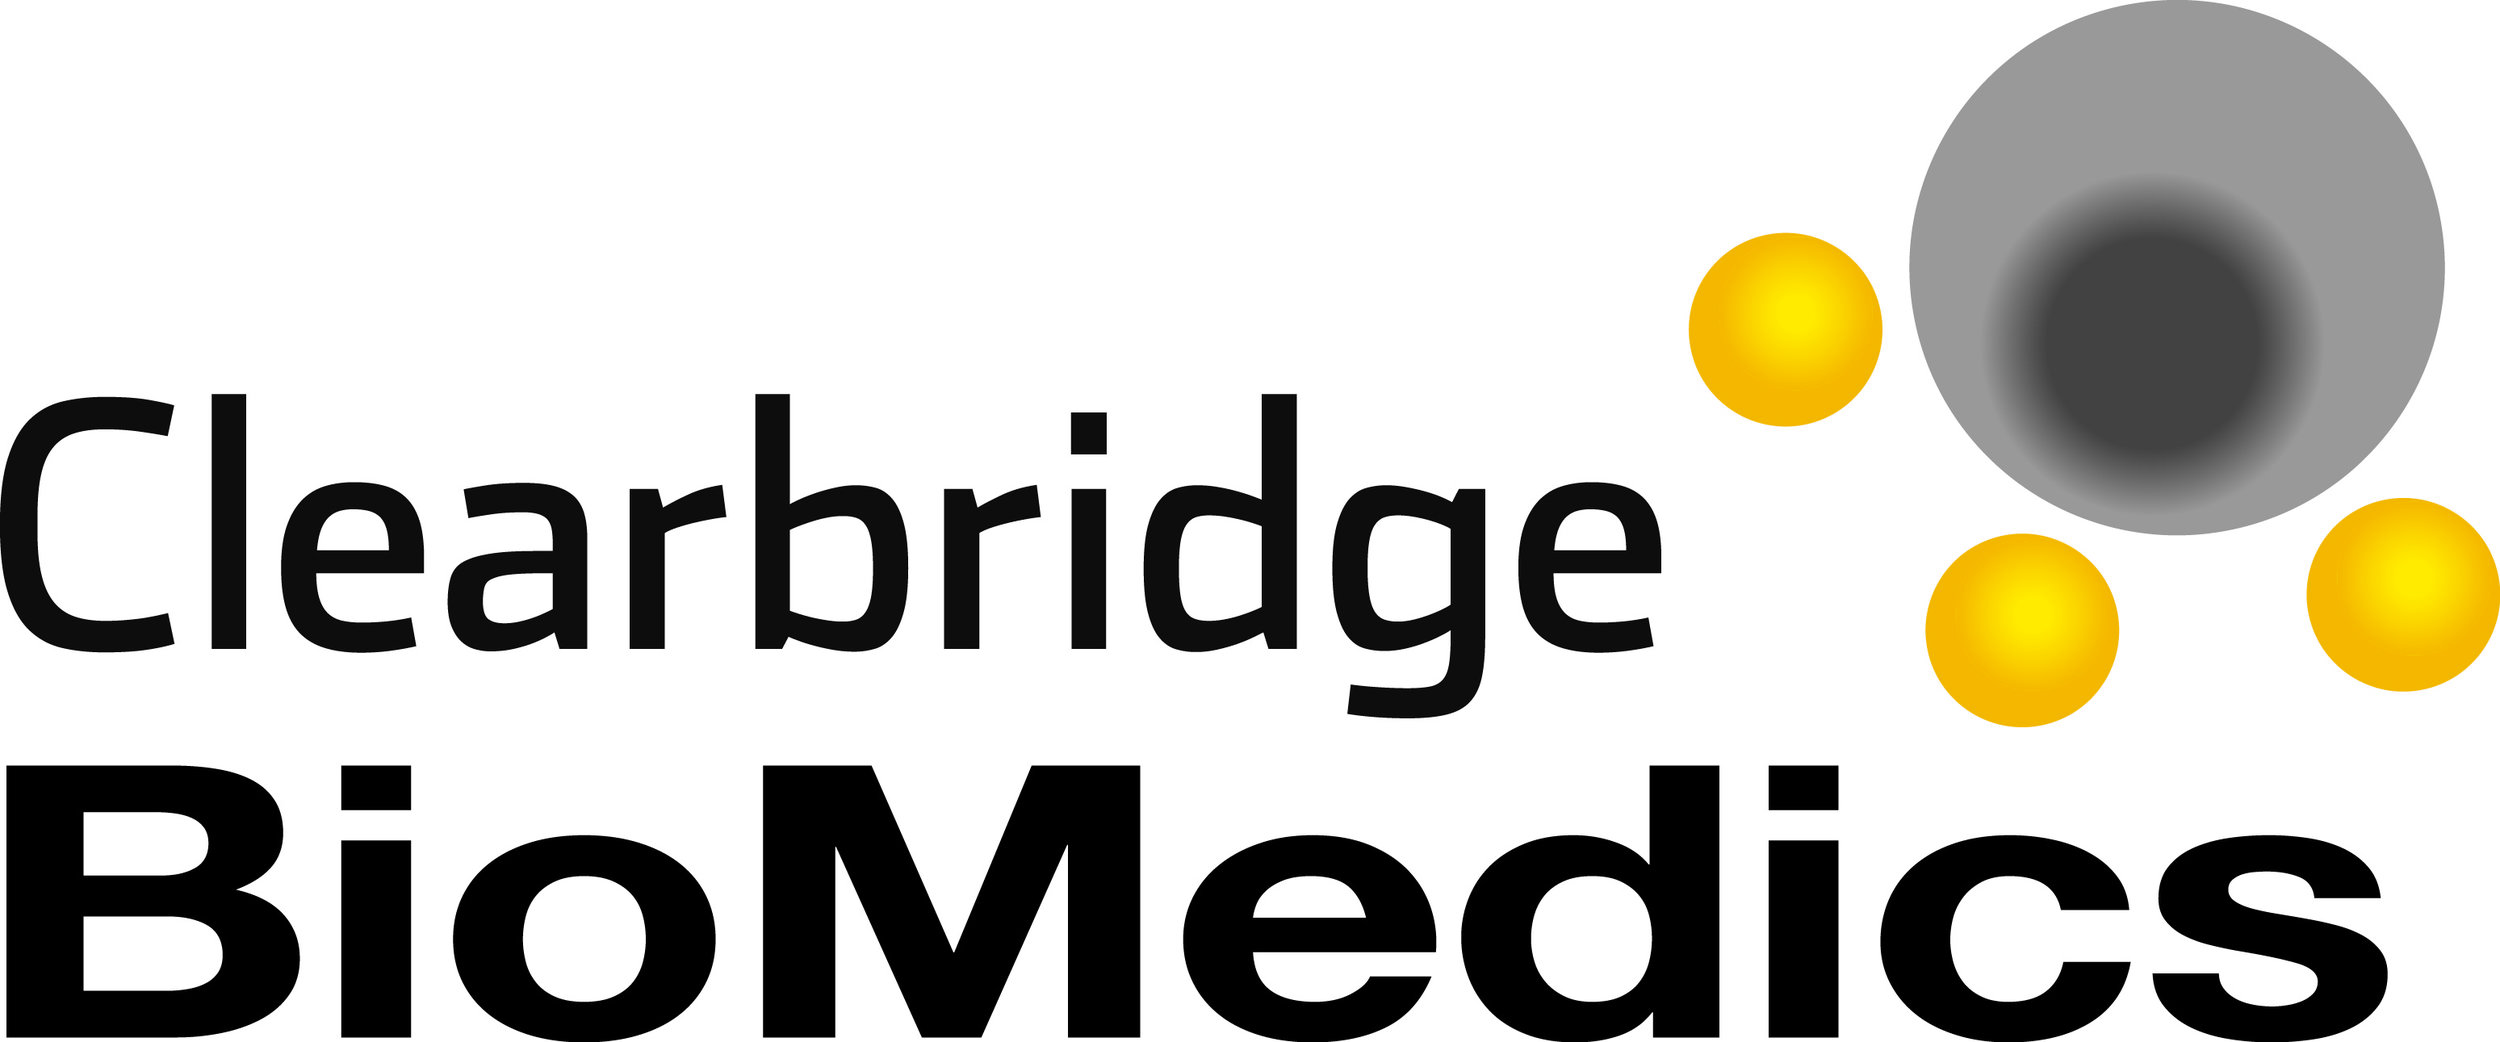 Find out how the Clearbridge BioMedics team utilised Stendard First™to transit towards ISO 13485:2016 within an hour of use. -